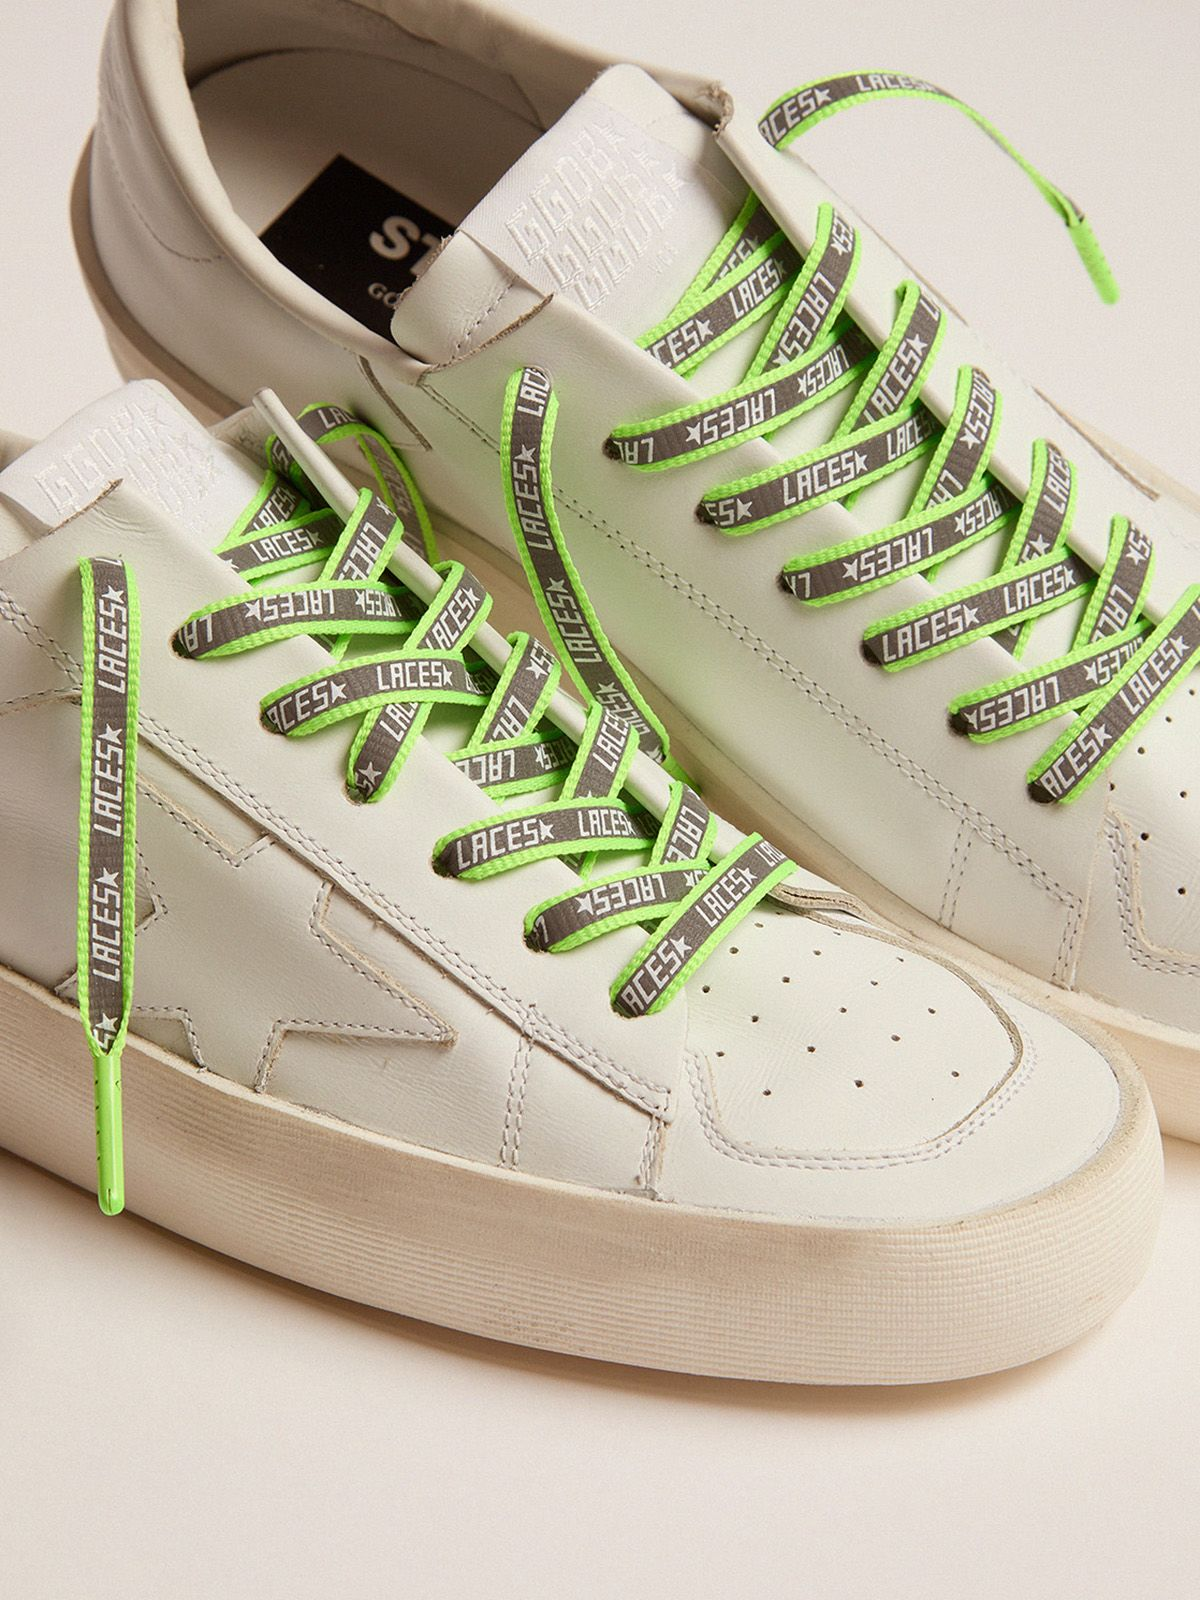 Golden Goose - Men's neon green reflective laces with laces print in